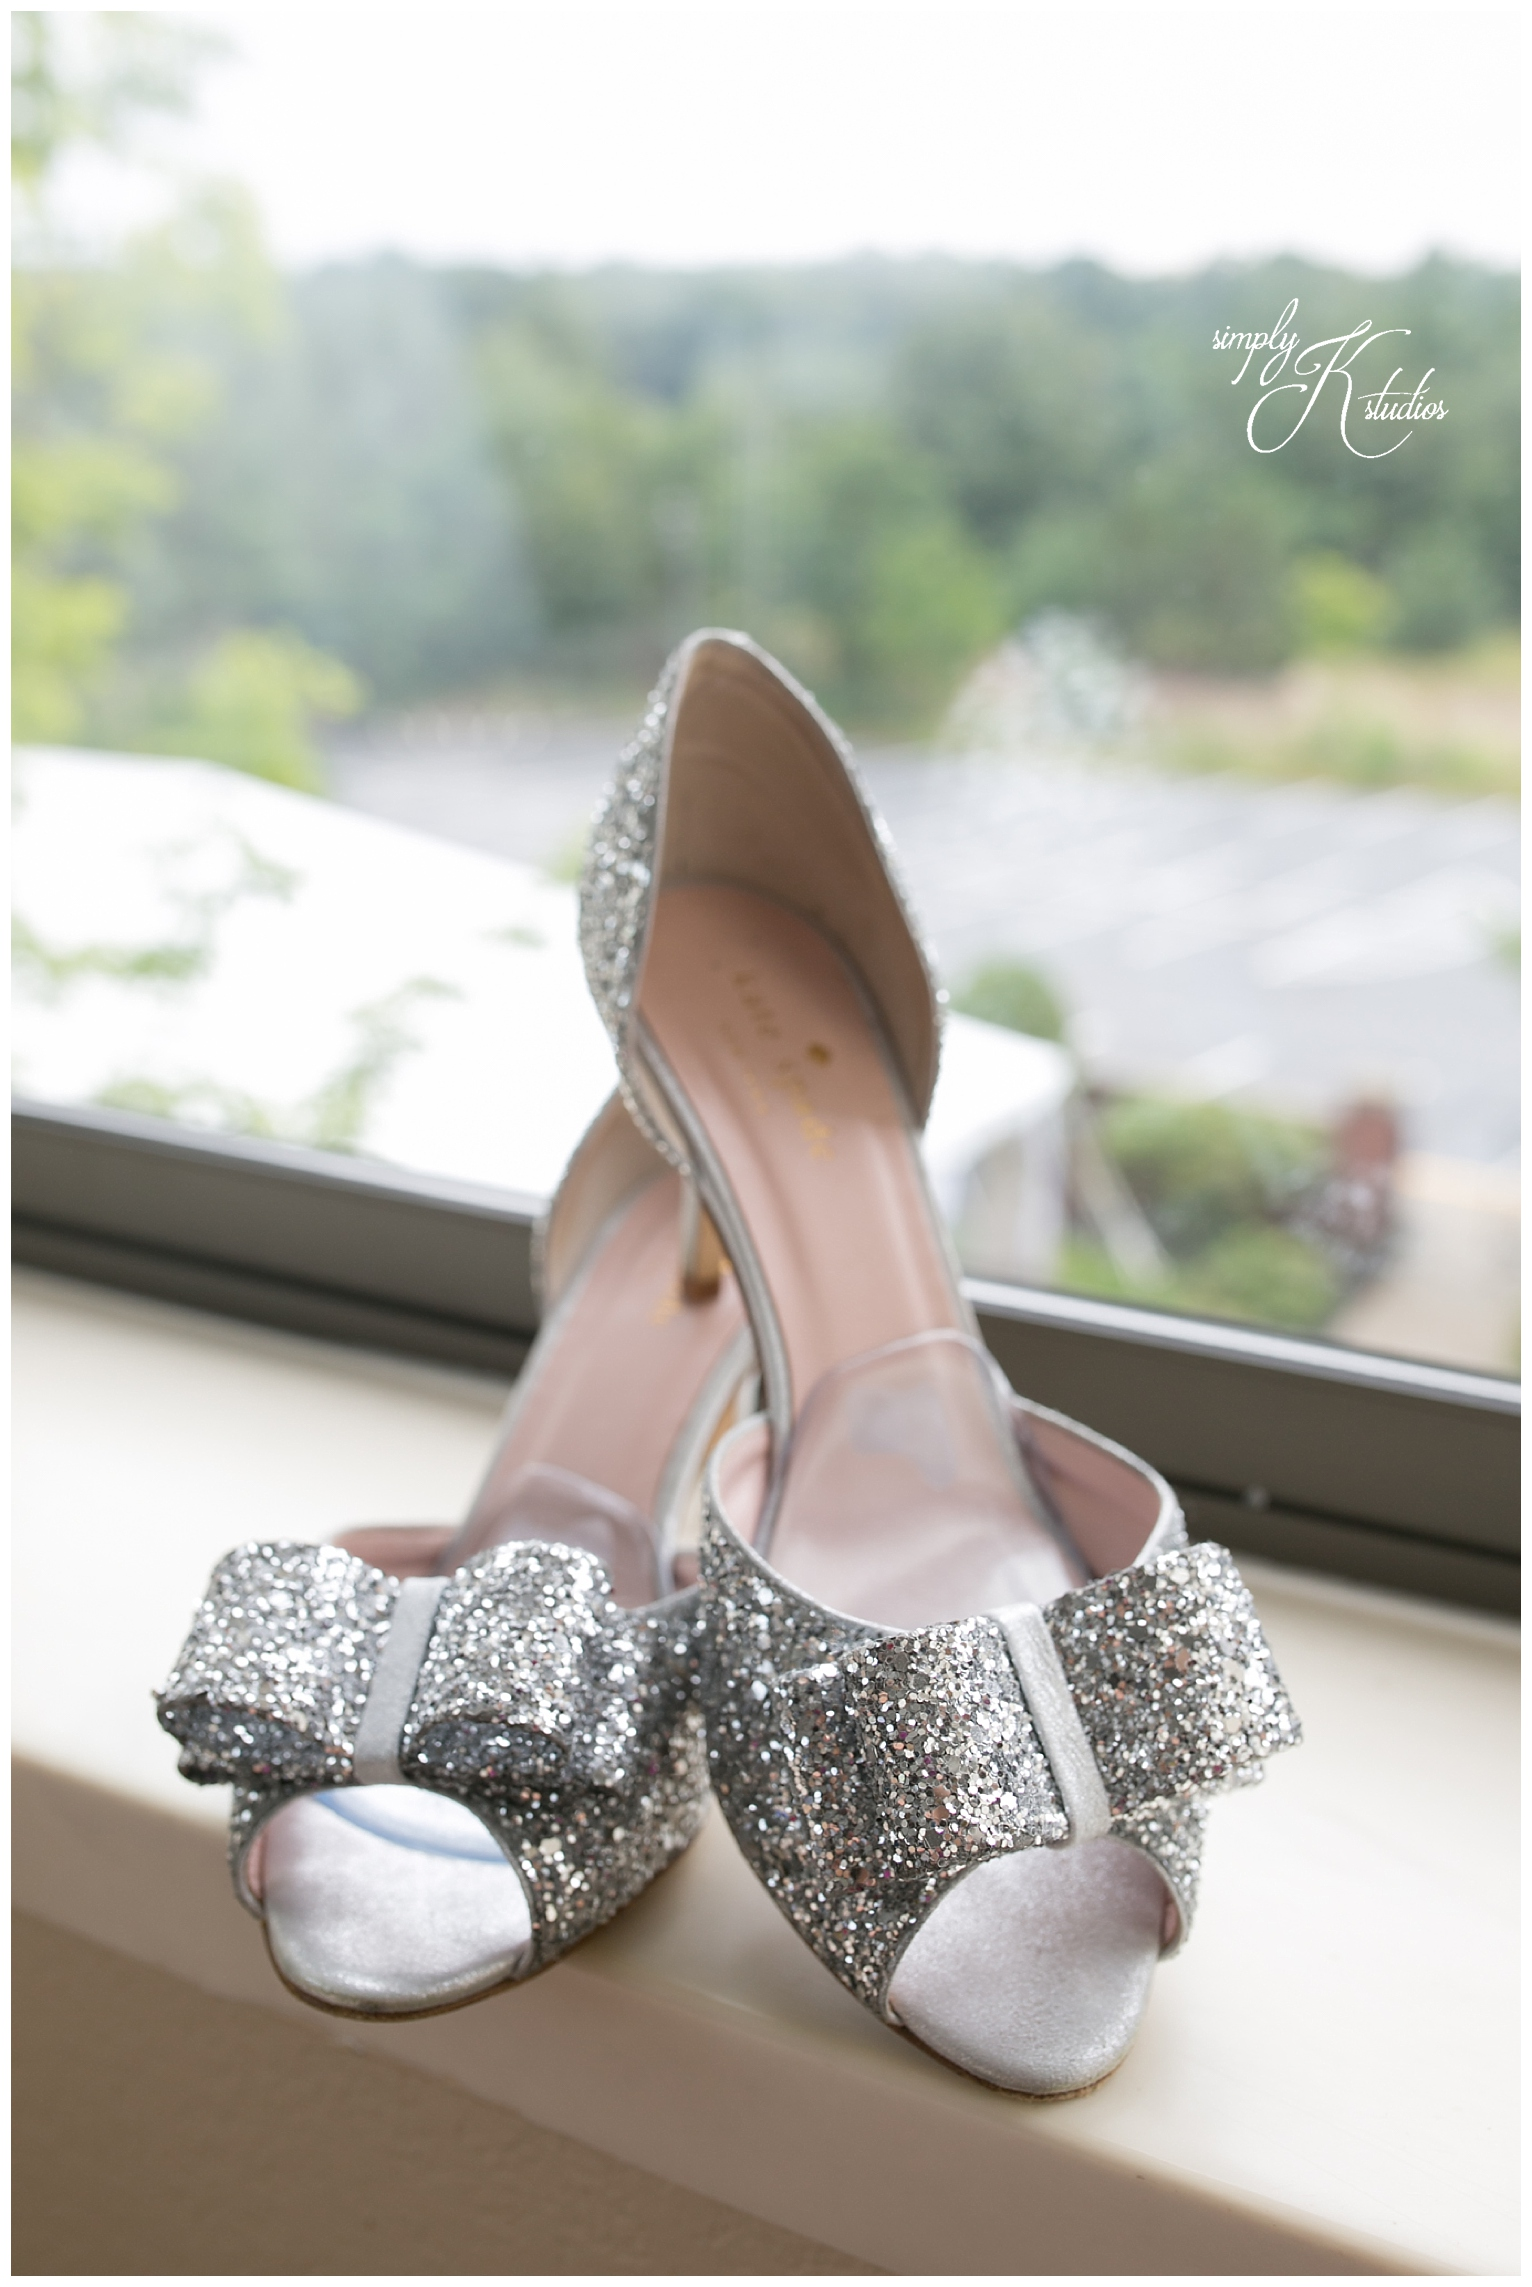 Kate Spade Bridal Shoes.jpg